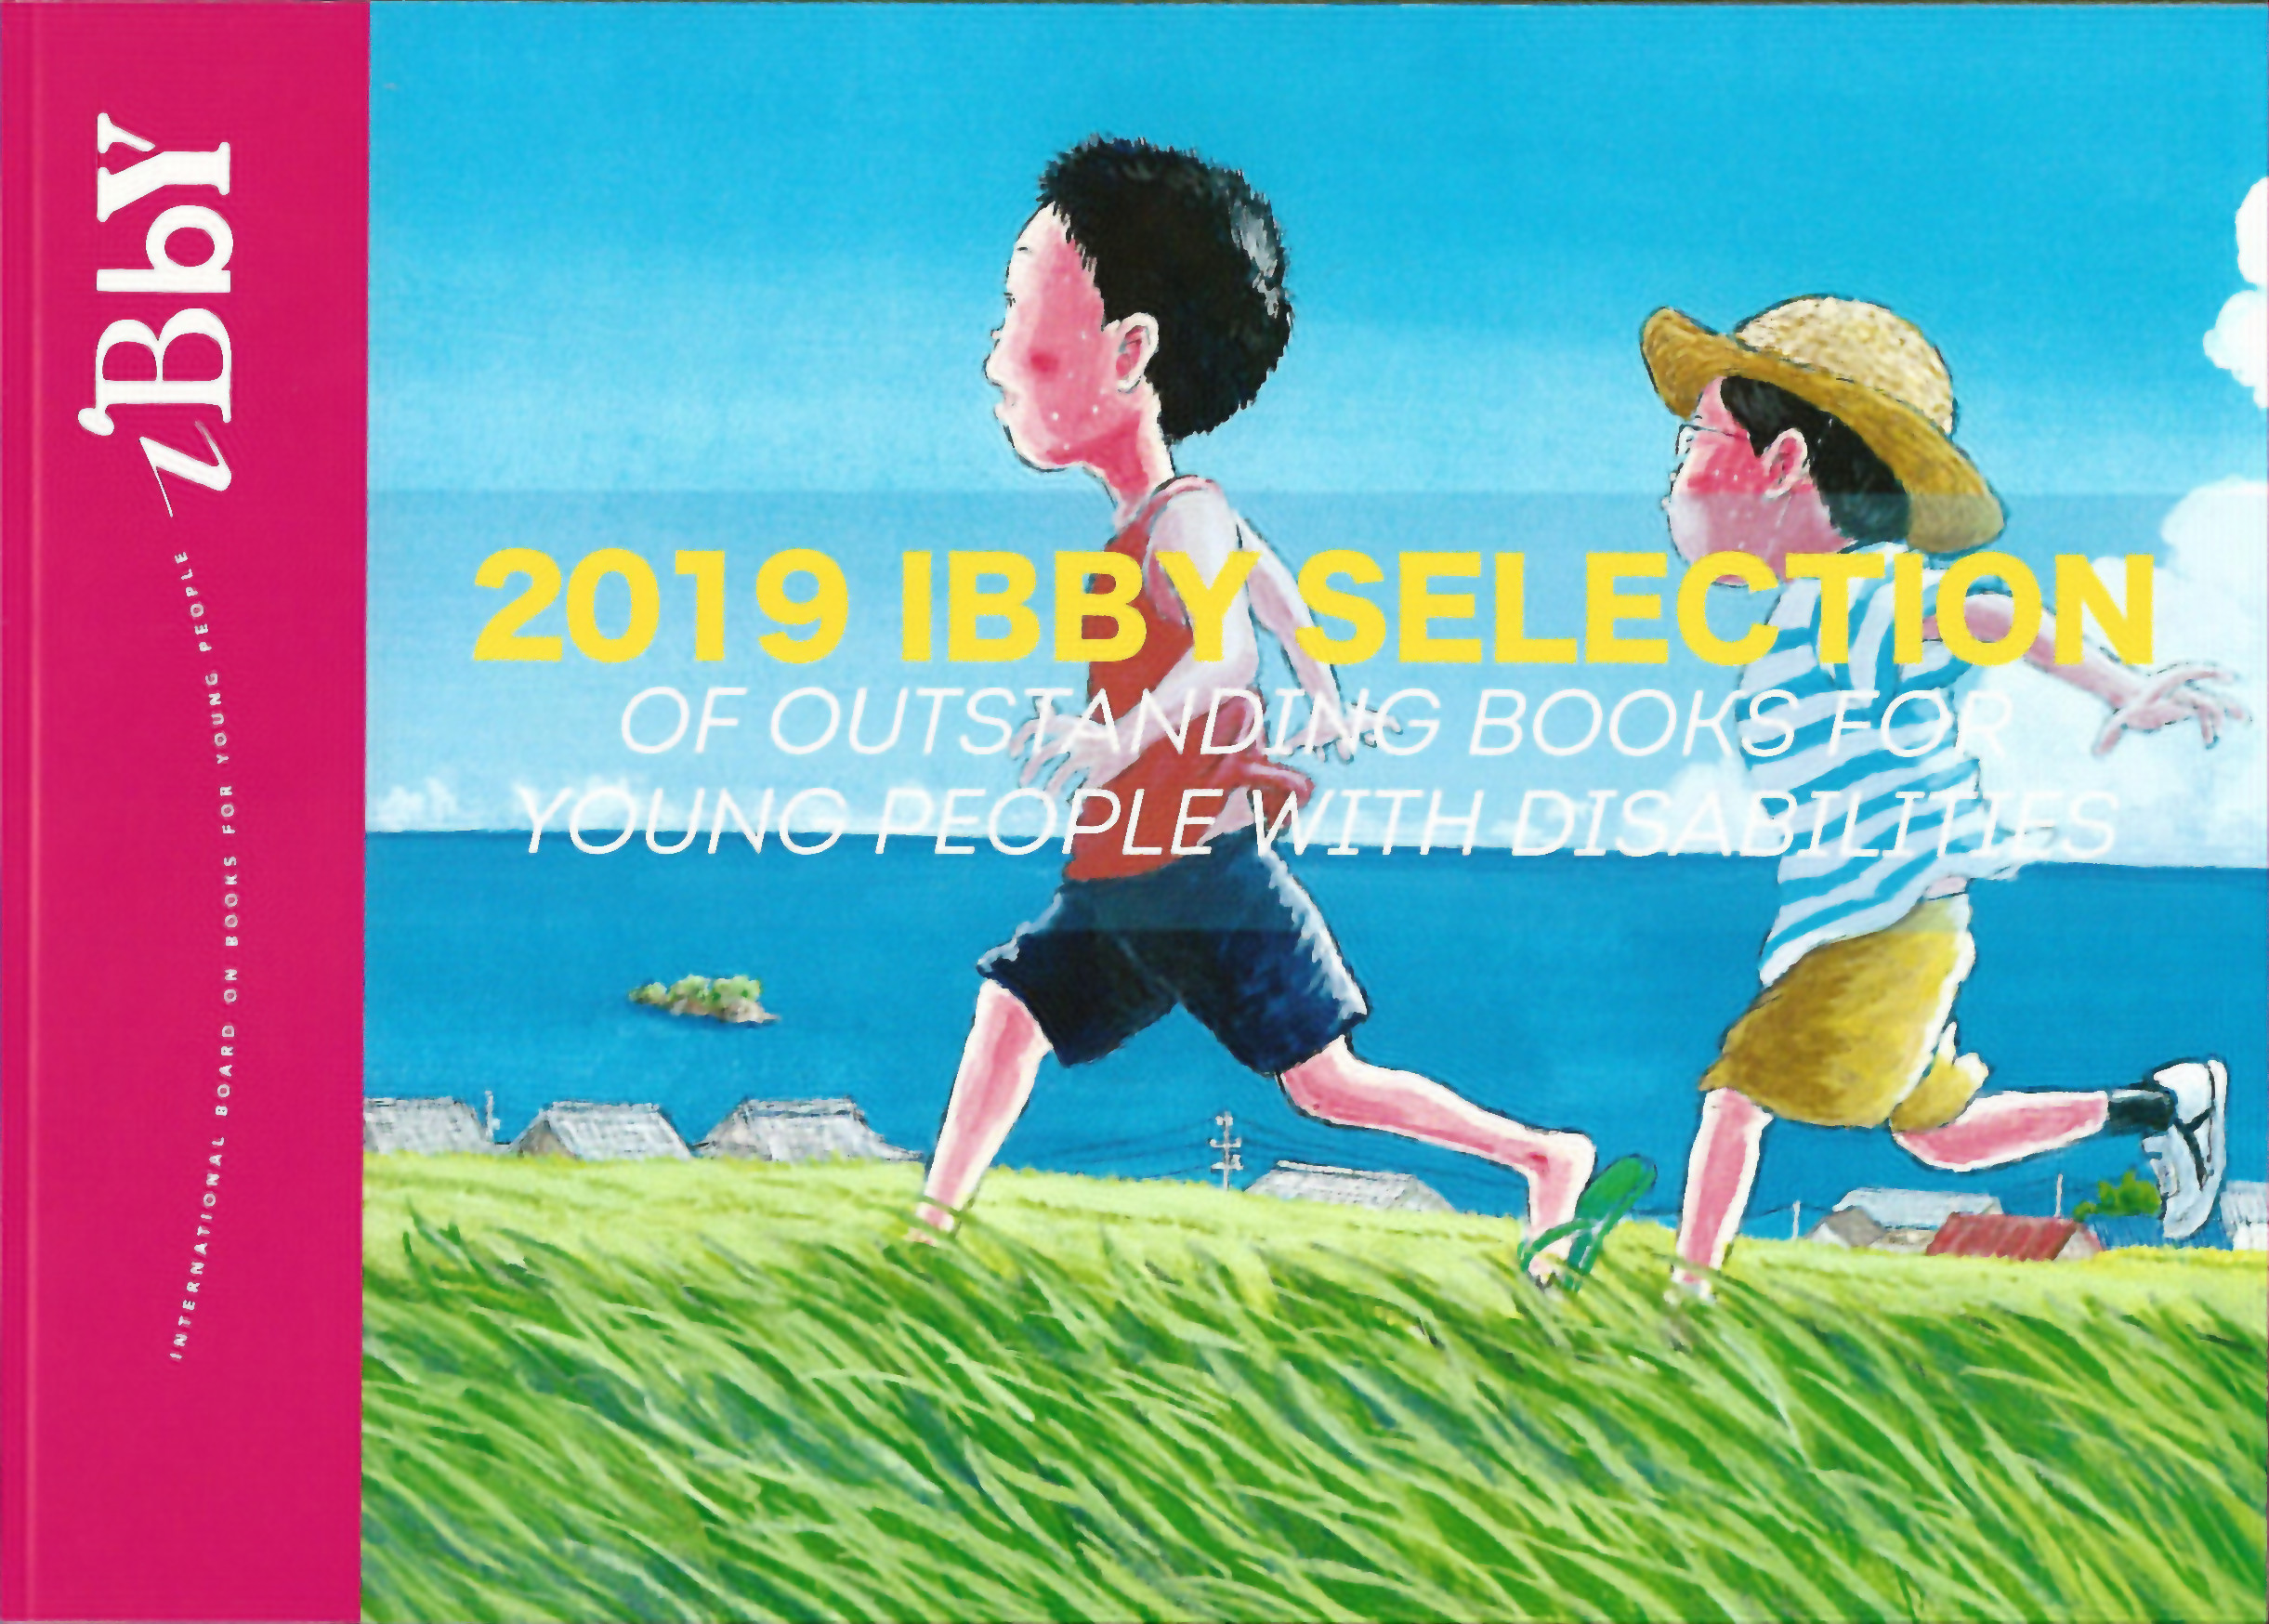 copertina del catalogo 2019 Ibby selection